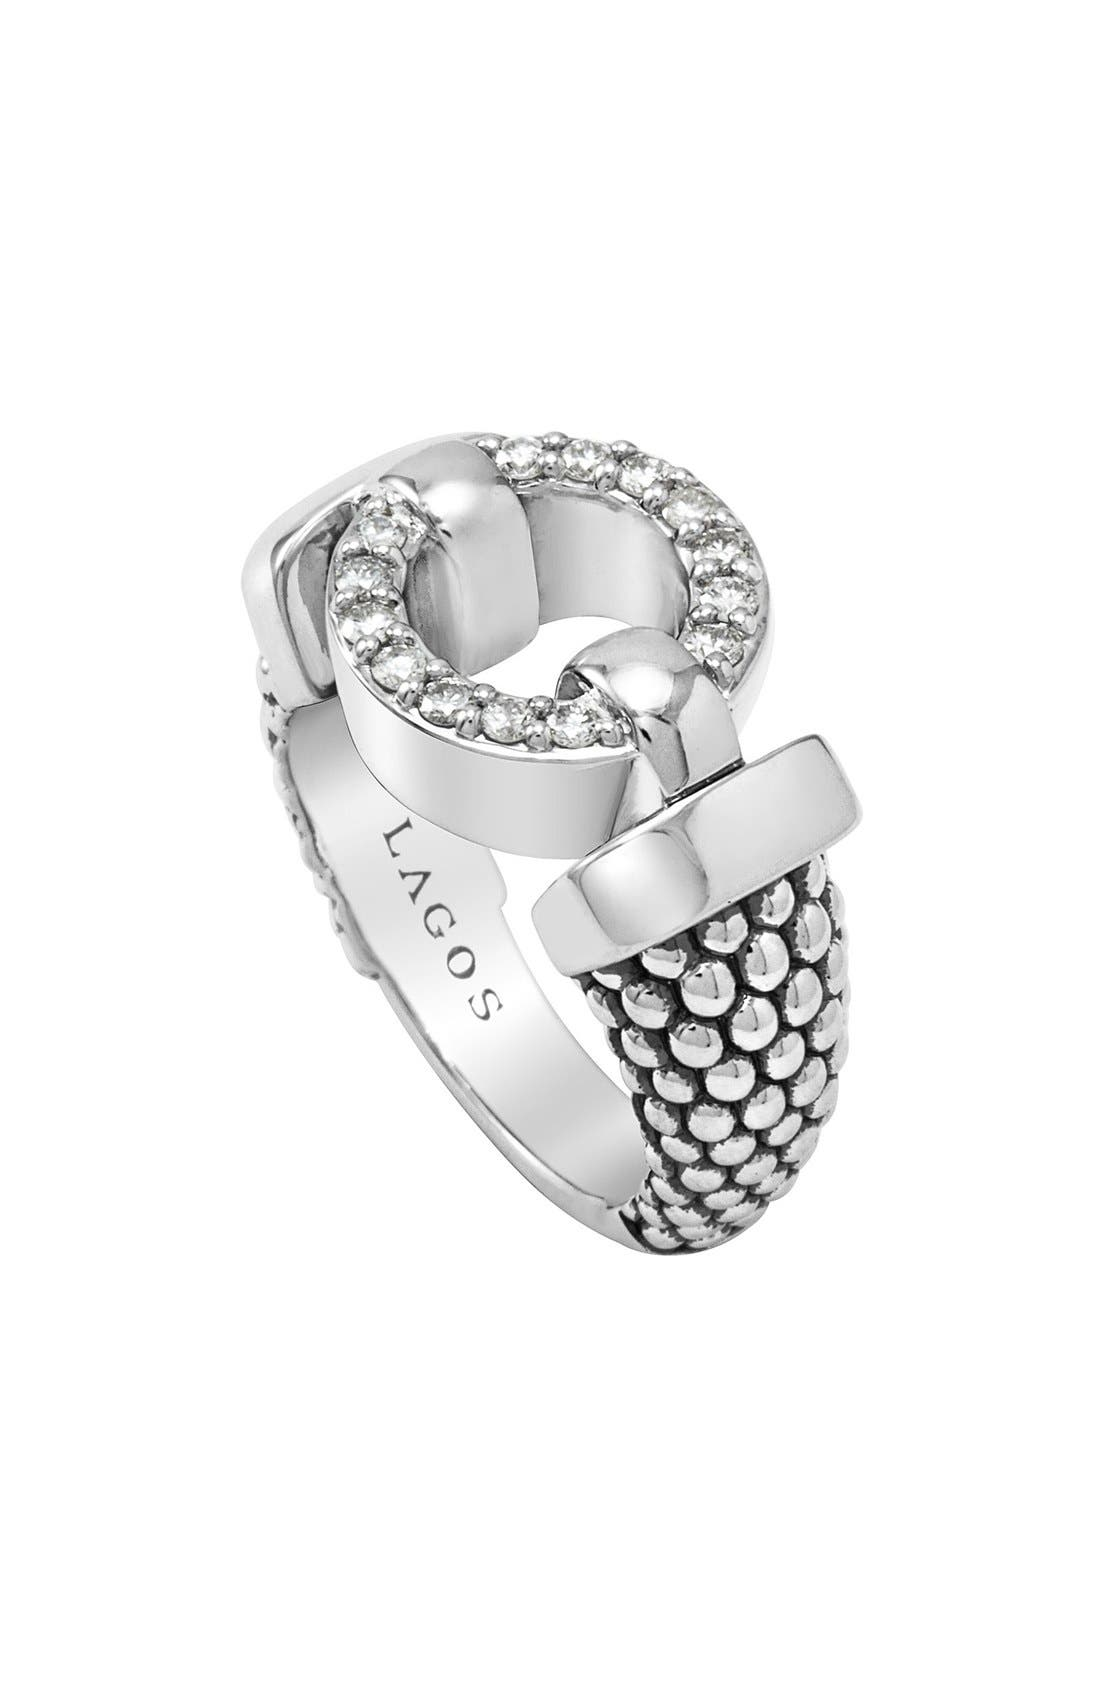 LAGOS Enso - Circle Game Diamond Caviar Ring